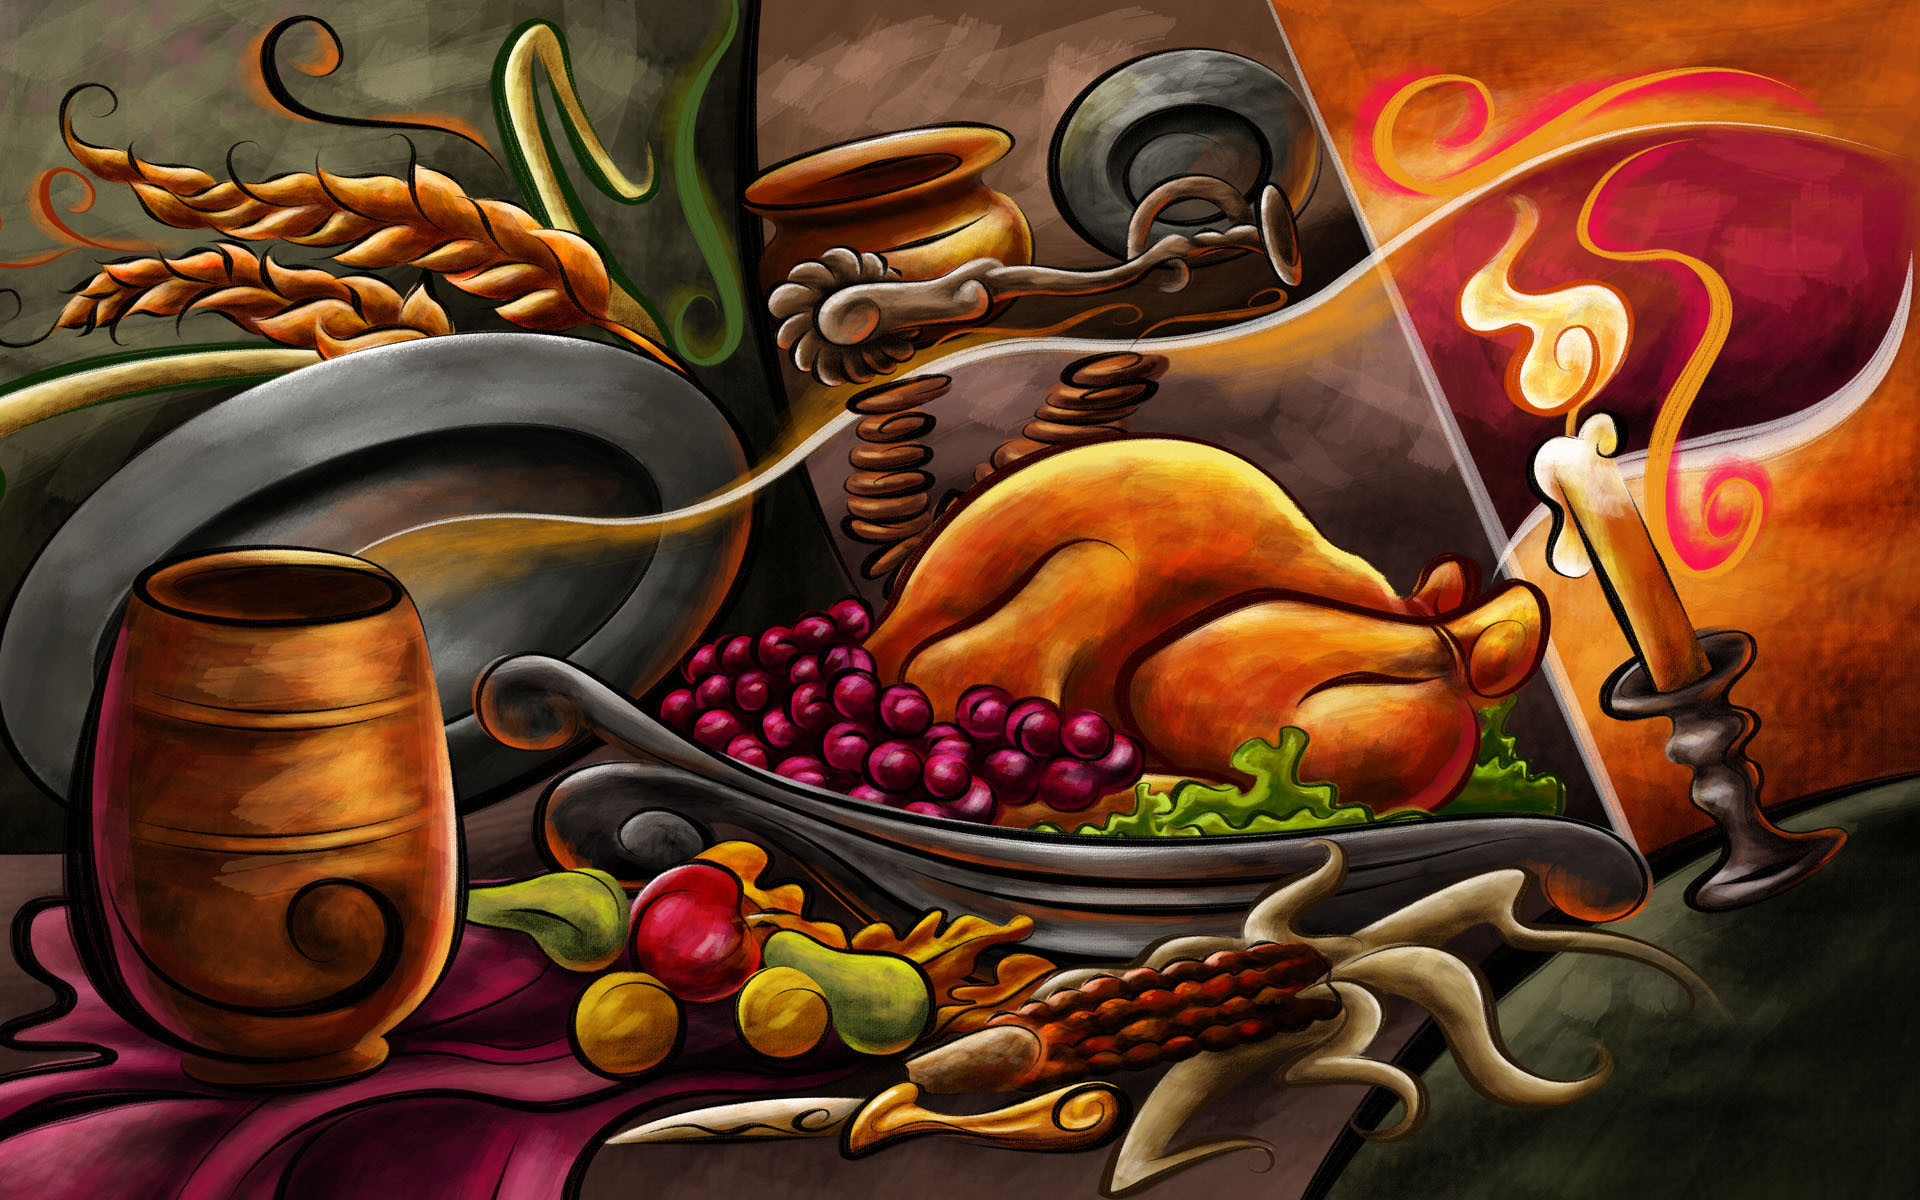 Res: 1920x1200, Thanksgiving-Dinner-image-holiday-2012